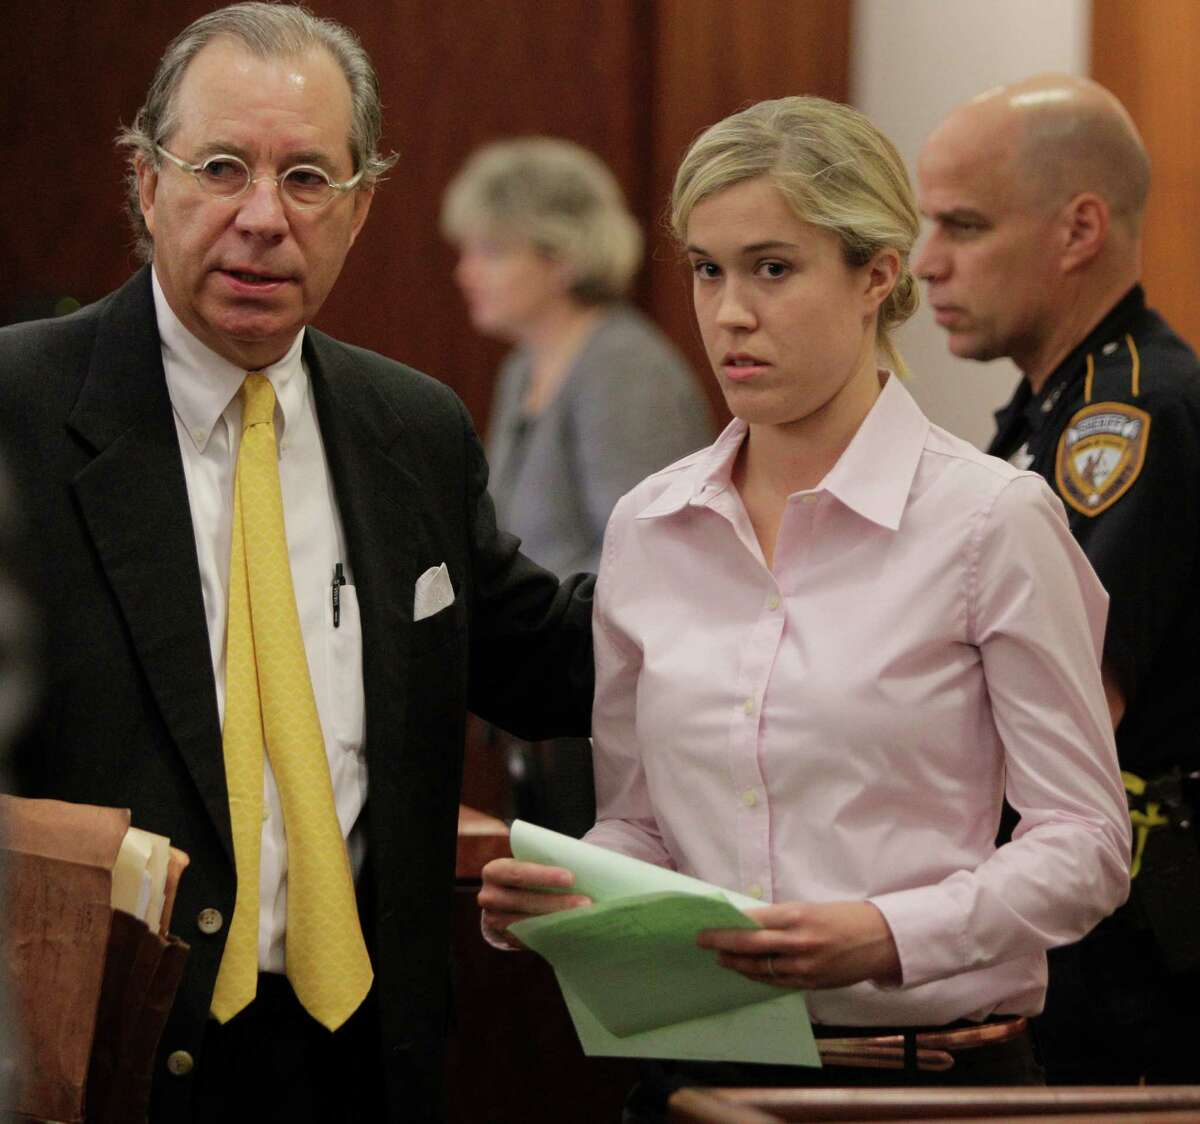 Kathryn Camille Murray, a former Spring Branch teacher accused of having sex with a 15-year-old student, leaves courtroom with attorney Robert Ross, right, at the Harris County Criminal Justice Center, 1201 Franklin, Thursday, July 12, 2012, in Houston. ( Melissa Phillip / Houston Chronicle )